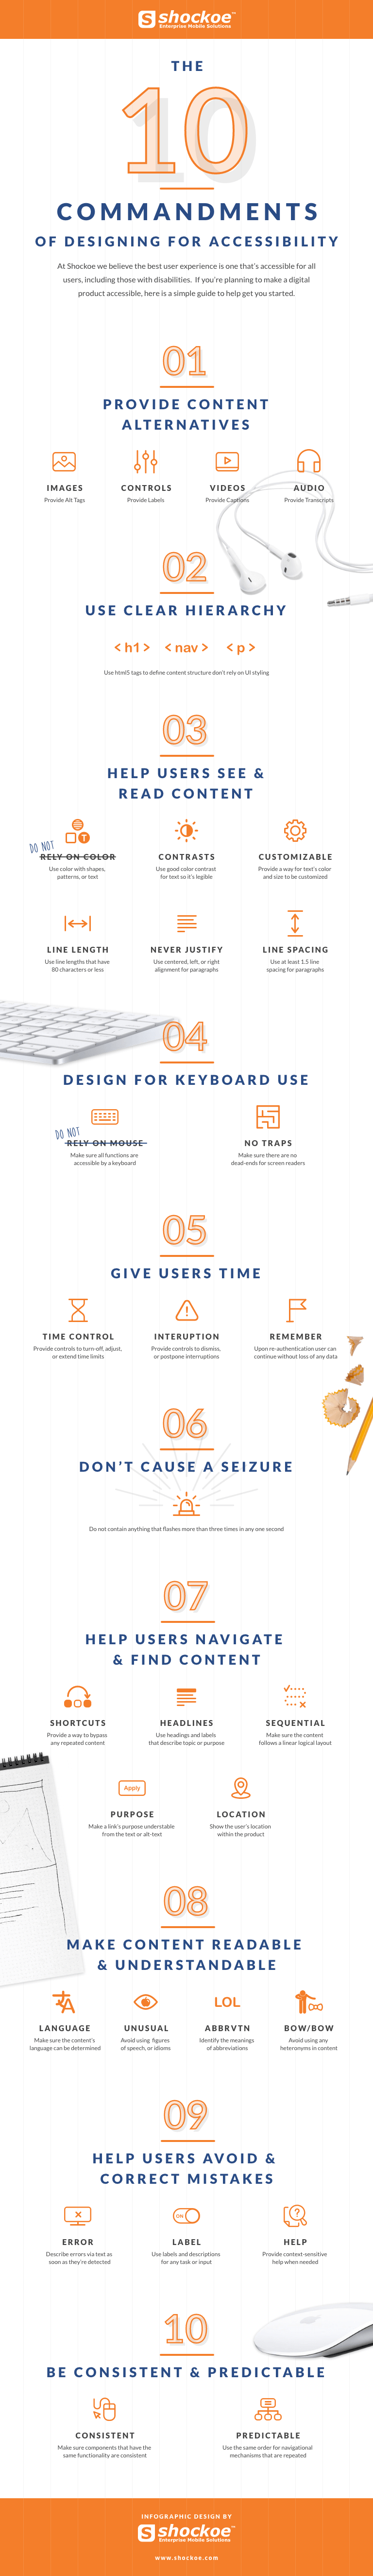 10 Commandments of Designing for Accessibility